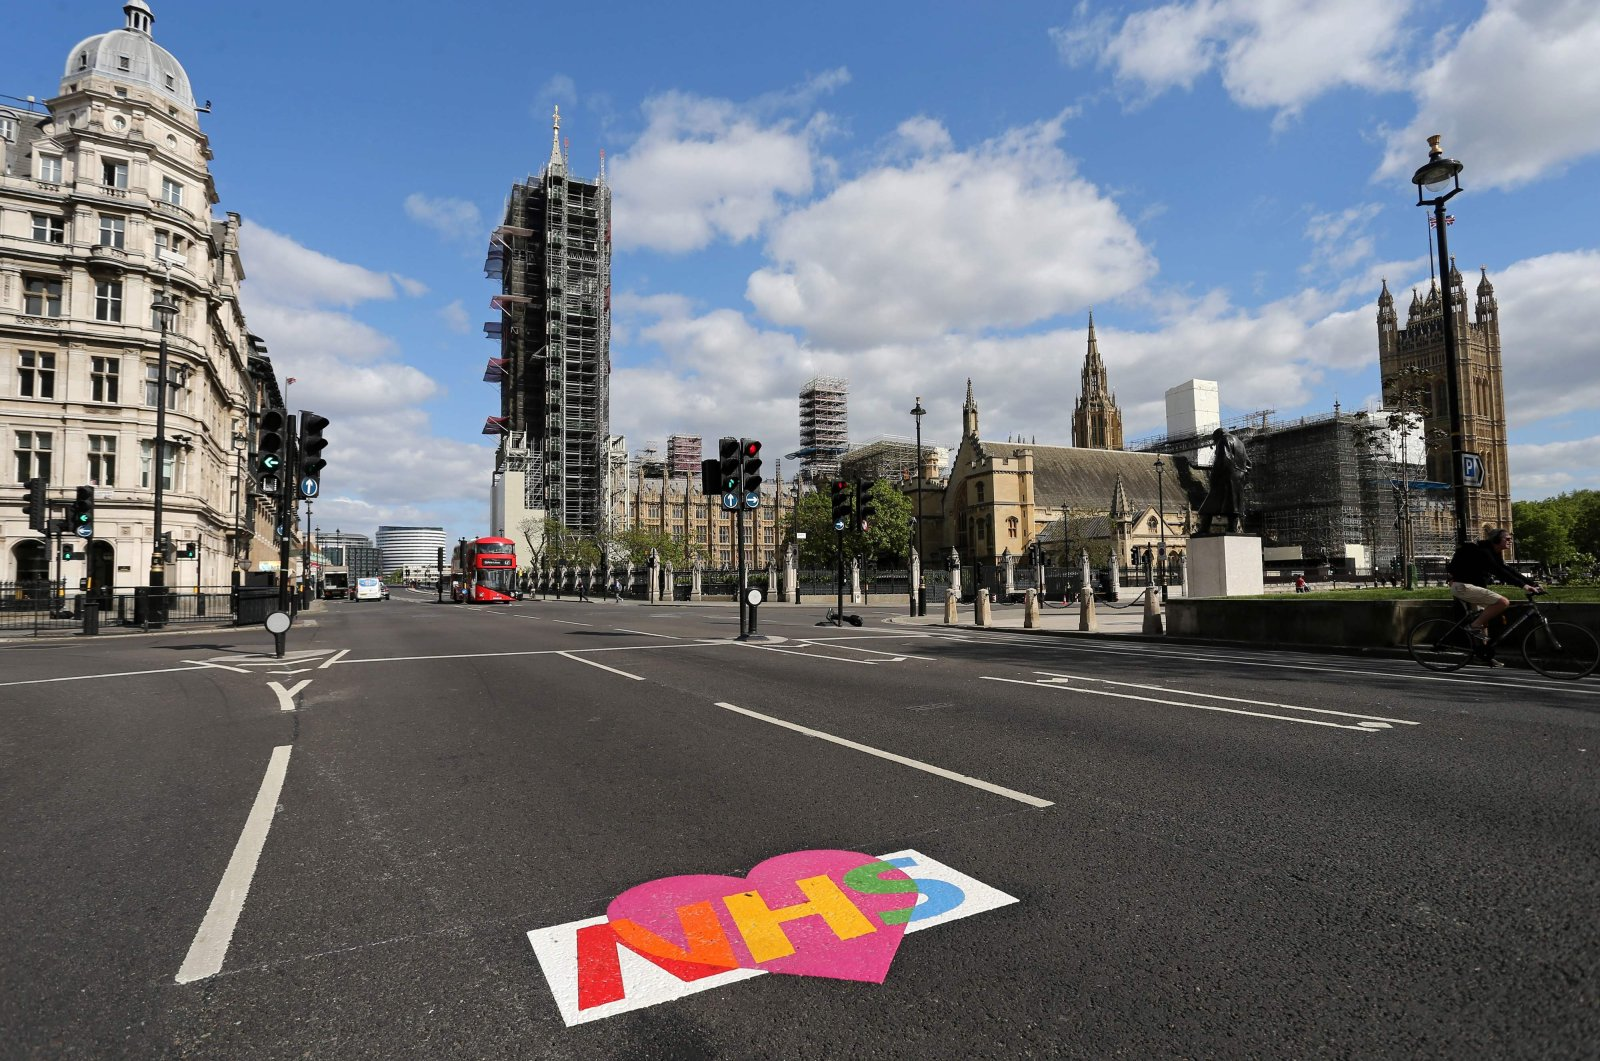 A logo of Britain's NHS (National Health Service) is pictured on an empty road near the Houses of Parliament in central London on May 11, 2020. (AFP Photo)